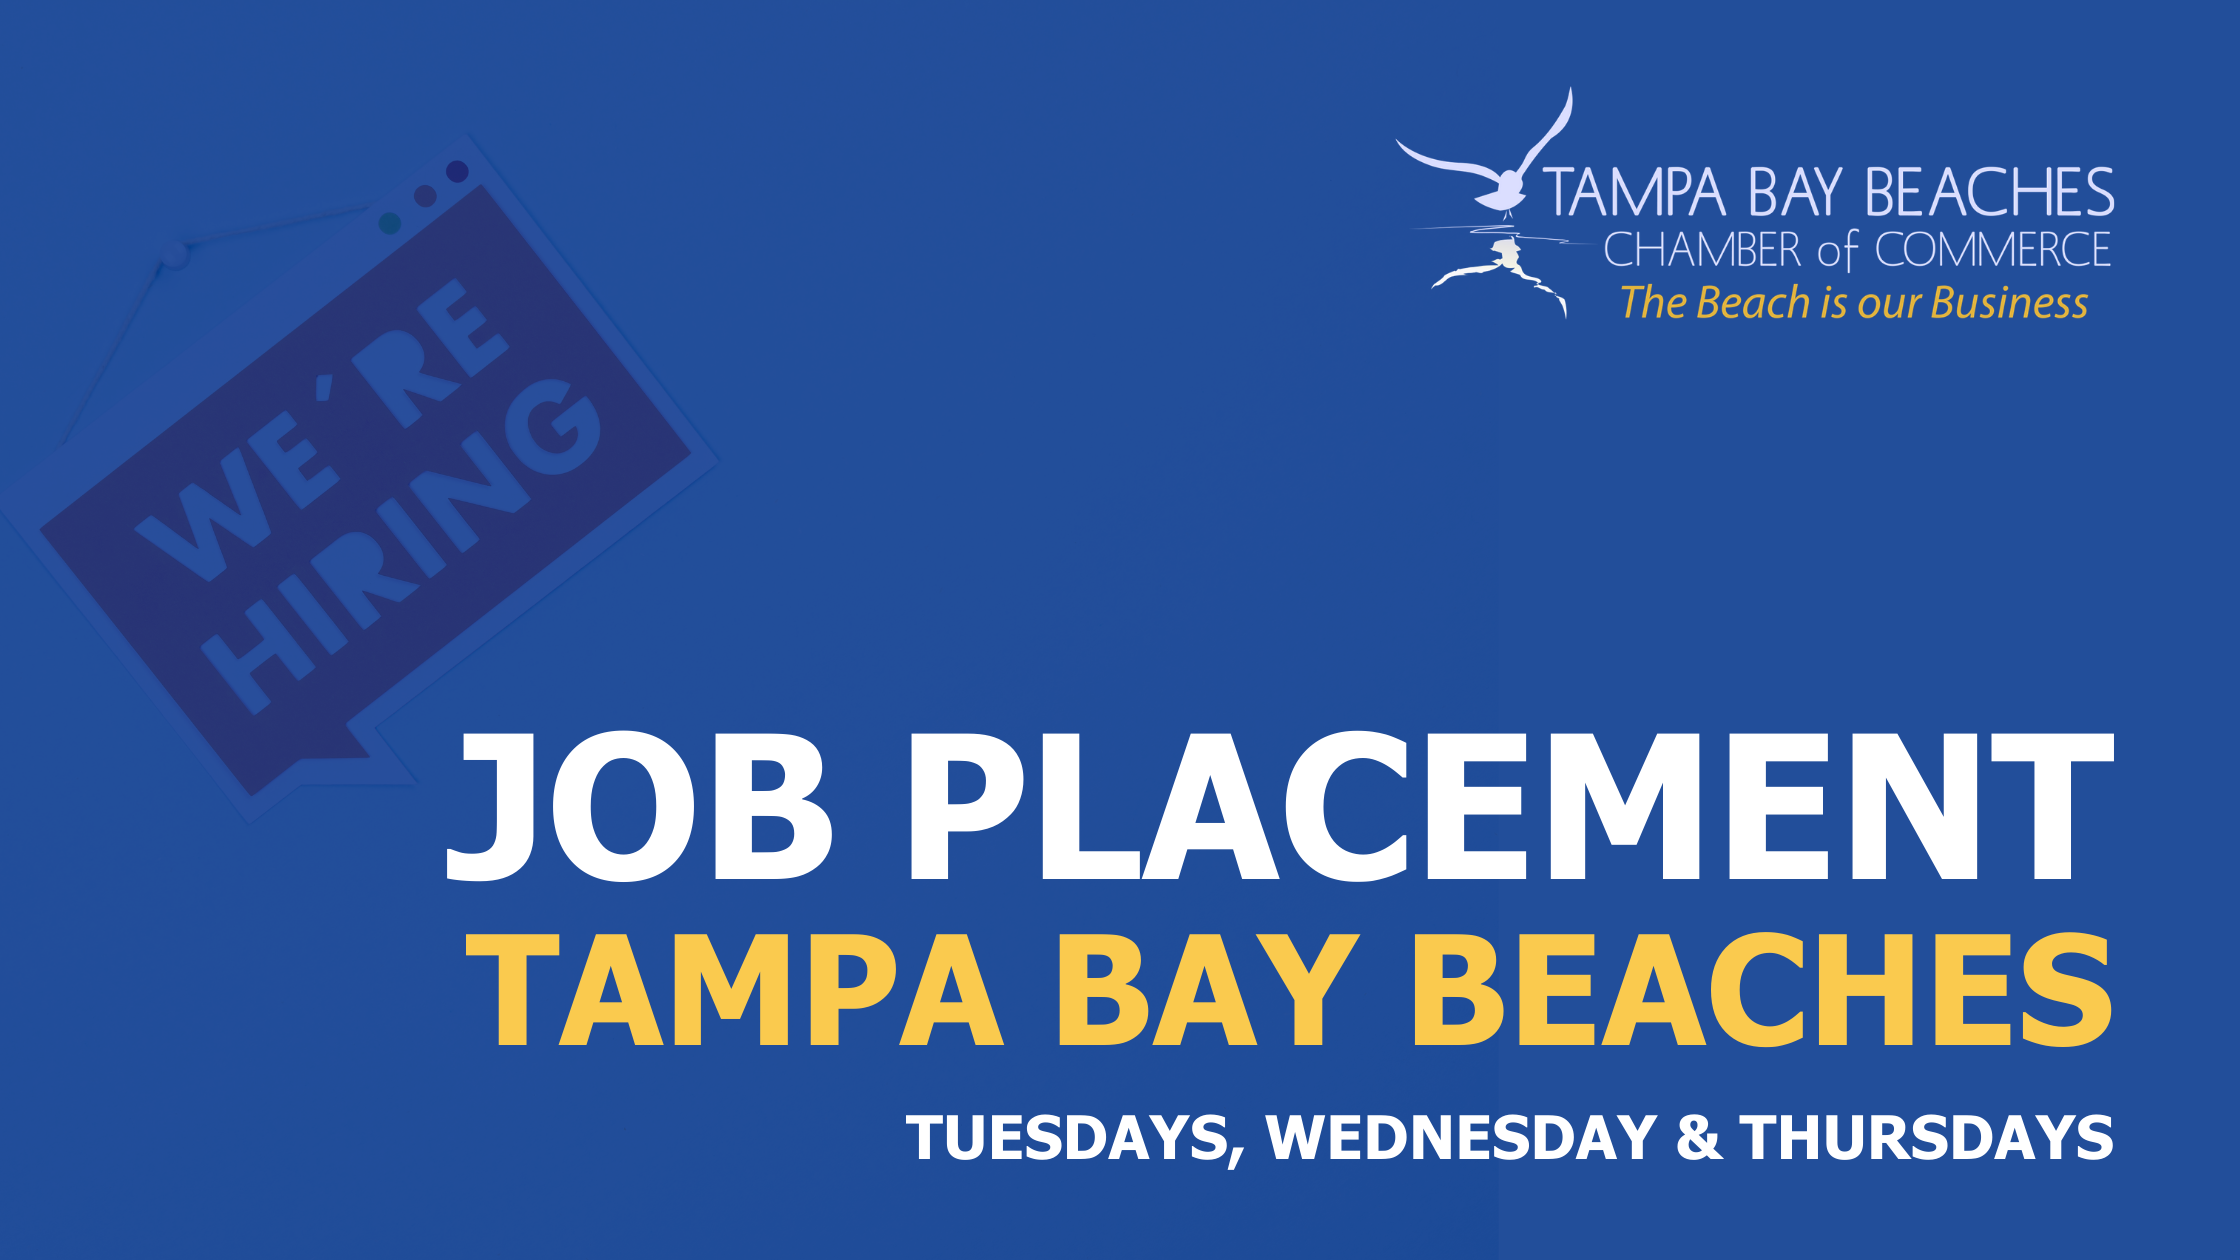 Bring your Resume to the Tampa Bay Beaches Chamber of Commerce  for Job Placement